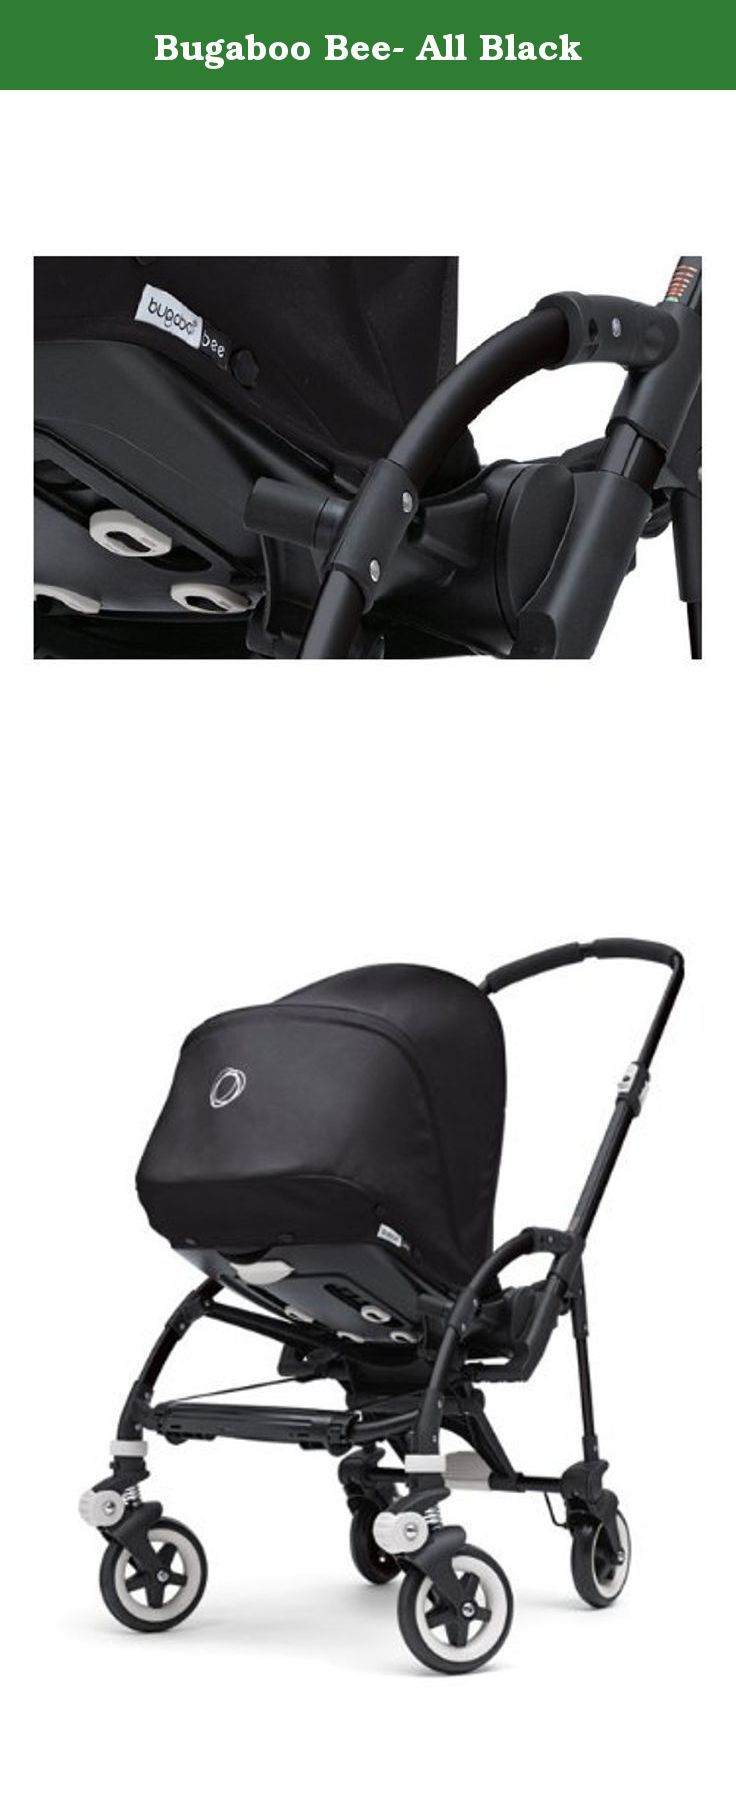 10 ideas about bugaboo bee on pinterest bugaboo bugaboo stroller and baby strollers. Black Bedroom Furniture Sets. Home Design Ideas